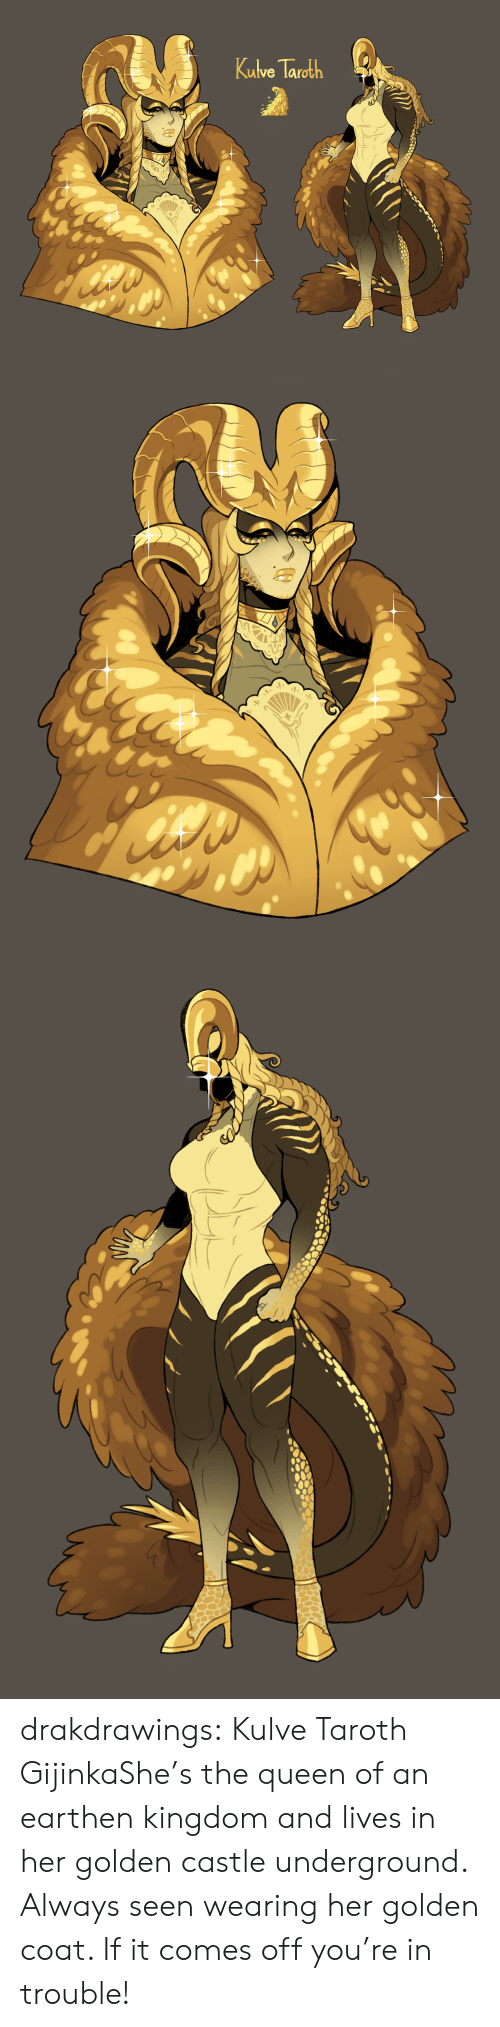 Tumblr, Queen, and Blog: Kutve Tarath drakdrawings:  Kulve Taroth GijinkaShe's the queen of an earthen kingdom and lives in her golden castle underground. Always seen wearing her golden coat. If it comes off you're in trouble!